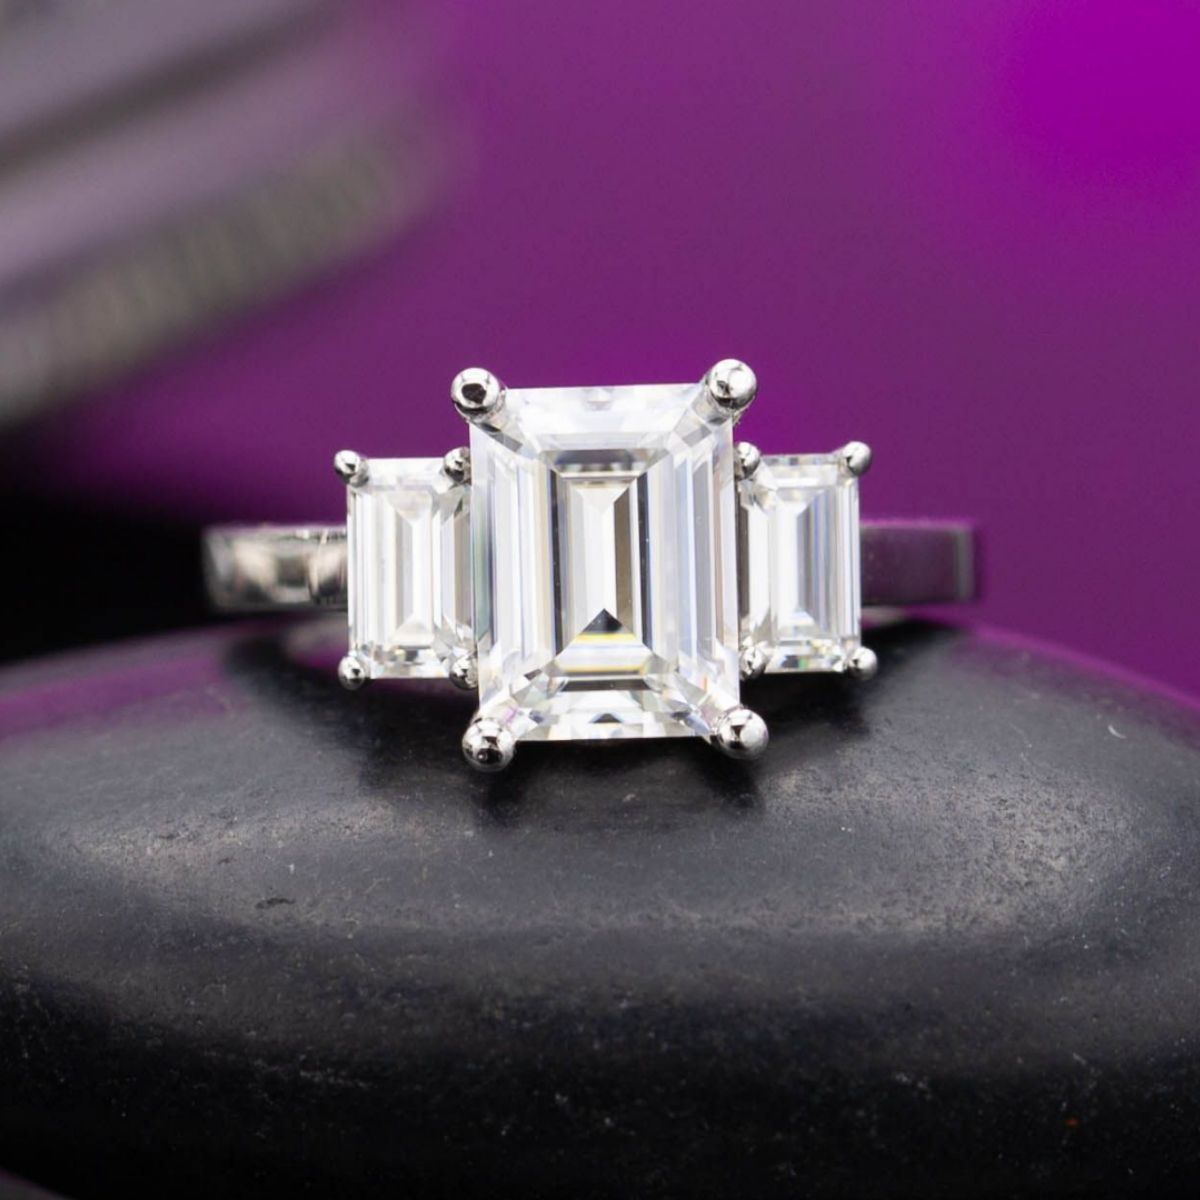 moissanite vs diamond - emerald-cut moissanite engagement ring